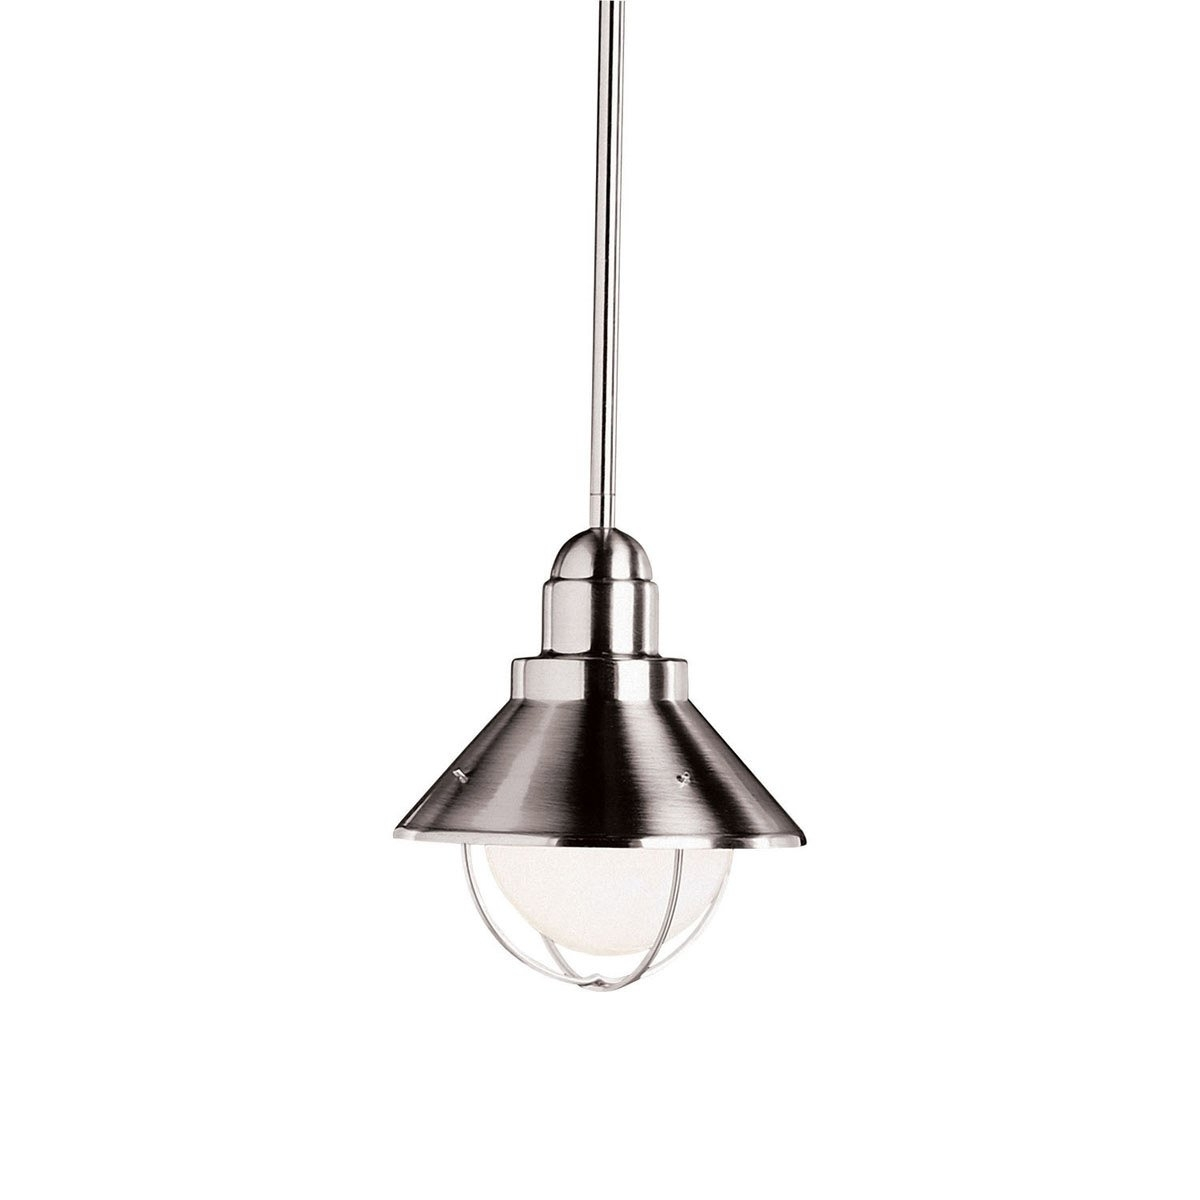 Kichler Lighting 2621Ni Seaside 1 Light 8 Inch Brushed Nickel Regarding Outdoor Pendant Kichler Lighting (View 15 of 15)